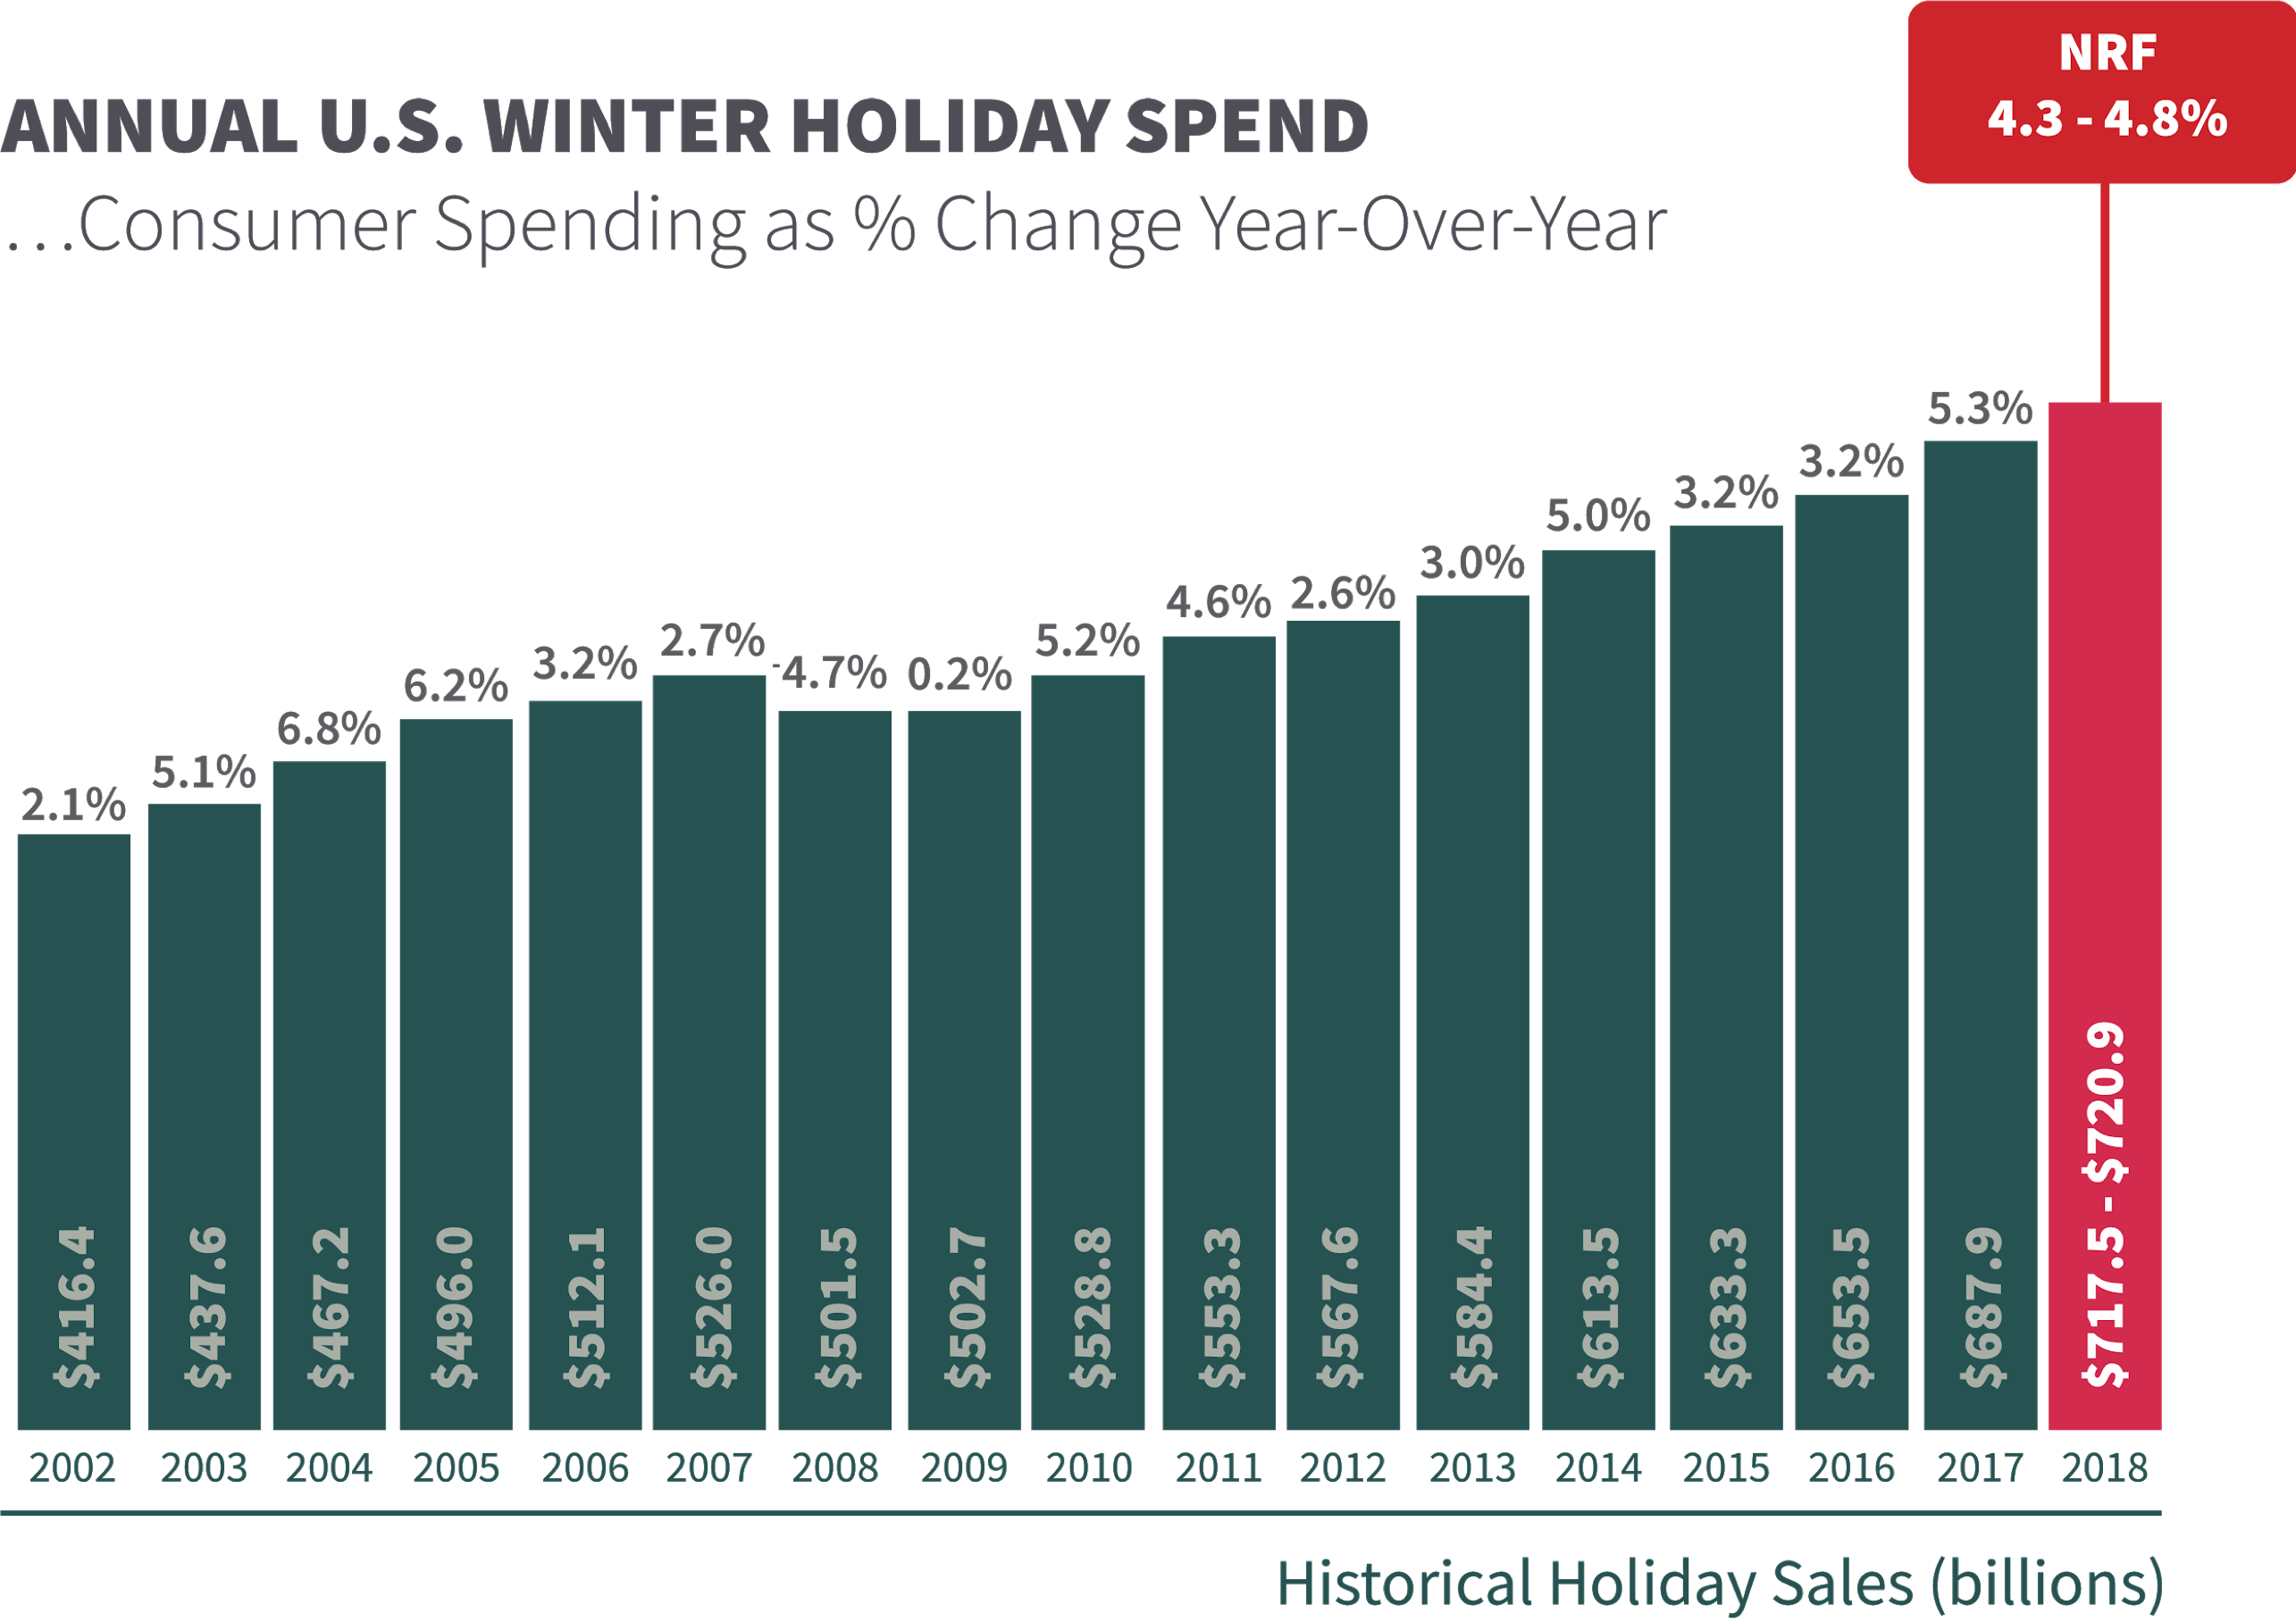 Annual growth in U.S. consumer winter holiday spend